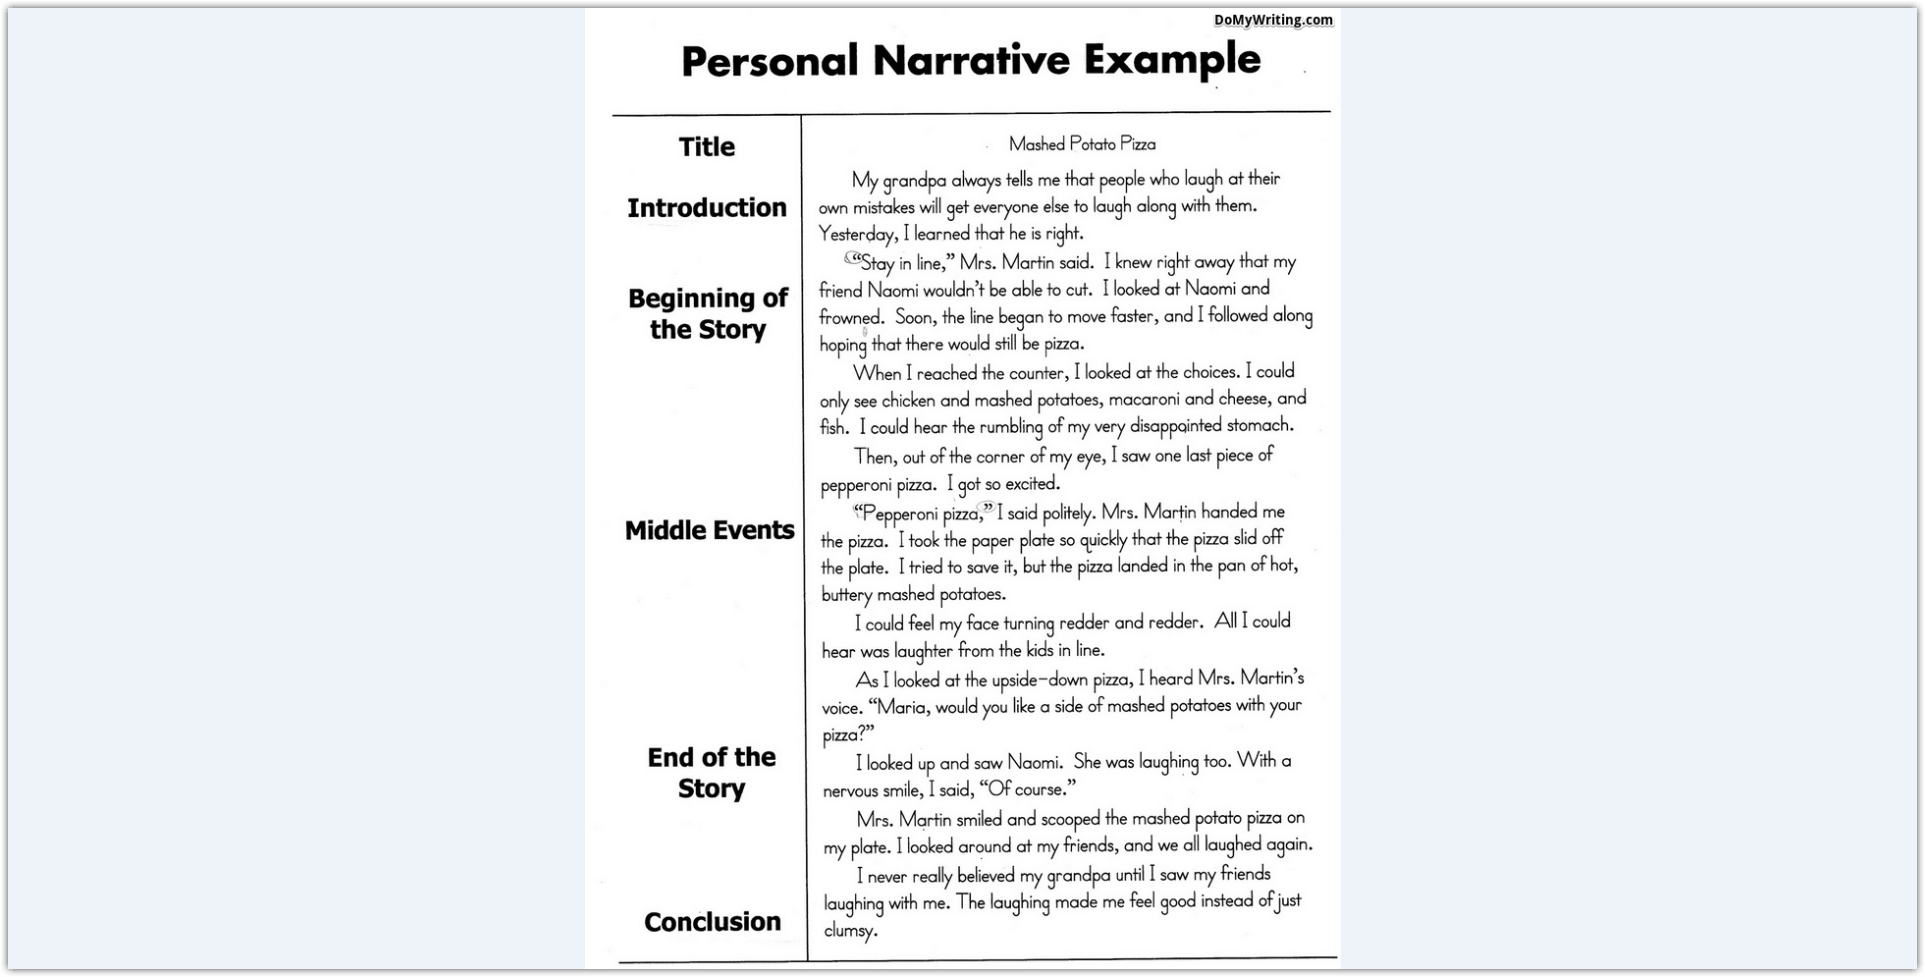 010 Example Of Narrative Magnificent Essay About Yourself Introduction Friendship Full